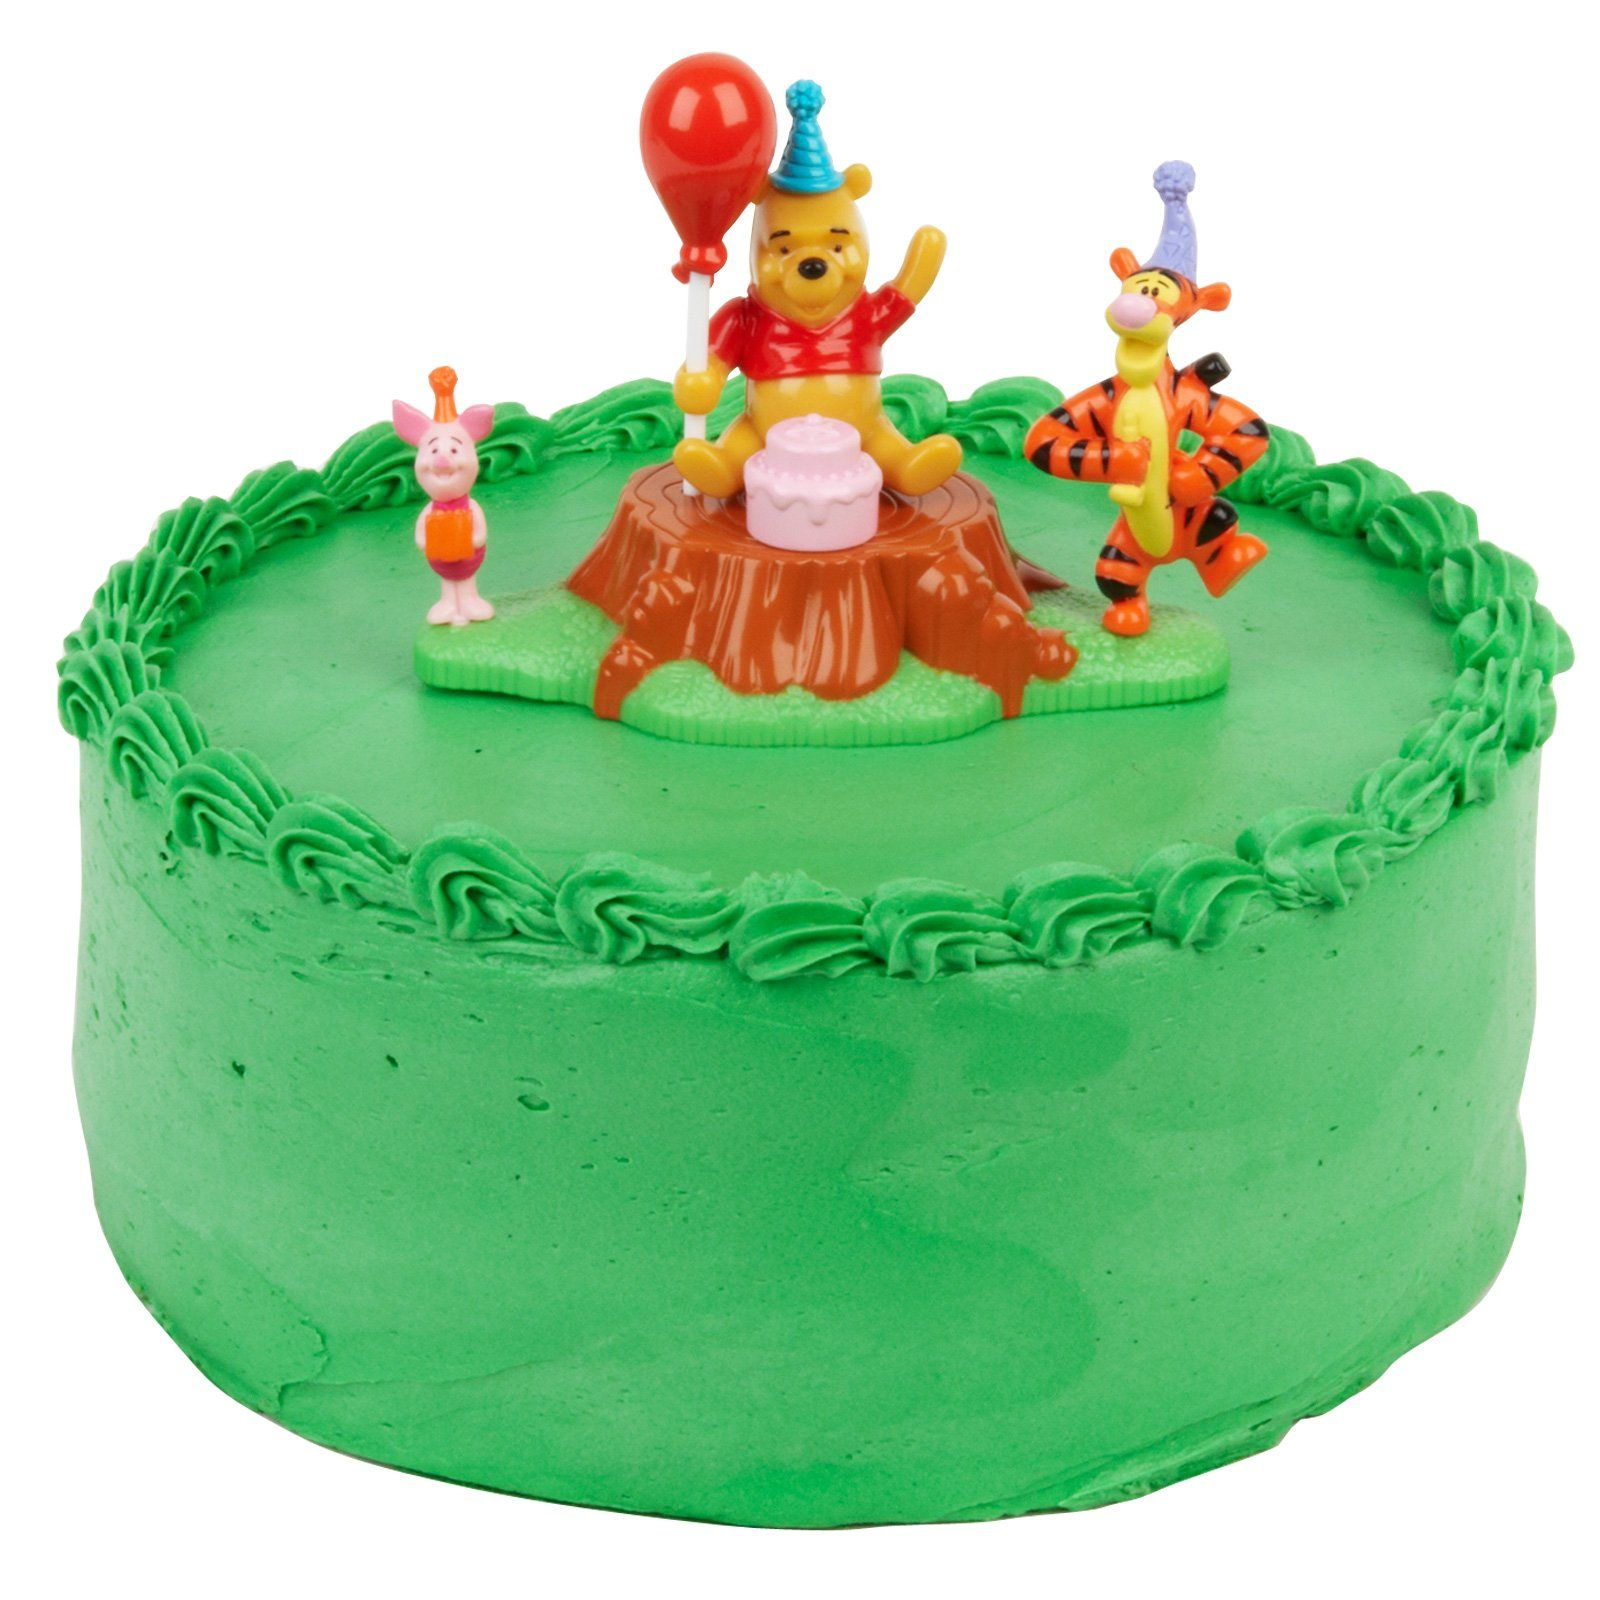 Winnie The Pooh Magic Balloon Cake Topper Description Celebrate With And Balloons This Playful Shows Tigger Piglet